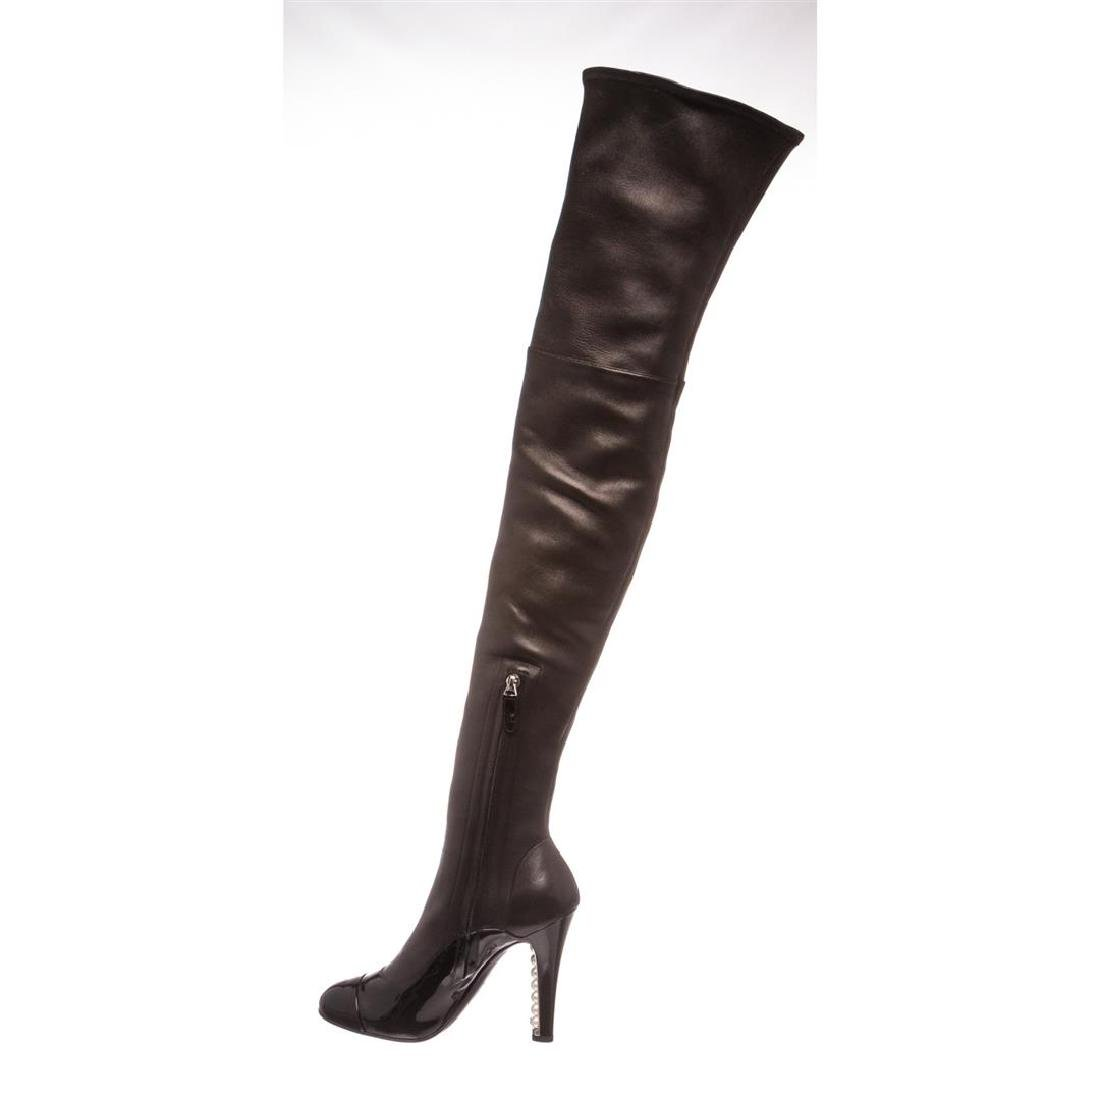 Chanel Black Leather Thigh-High Pearl Heel Boots Heels - 5